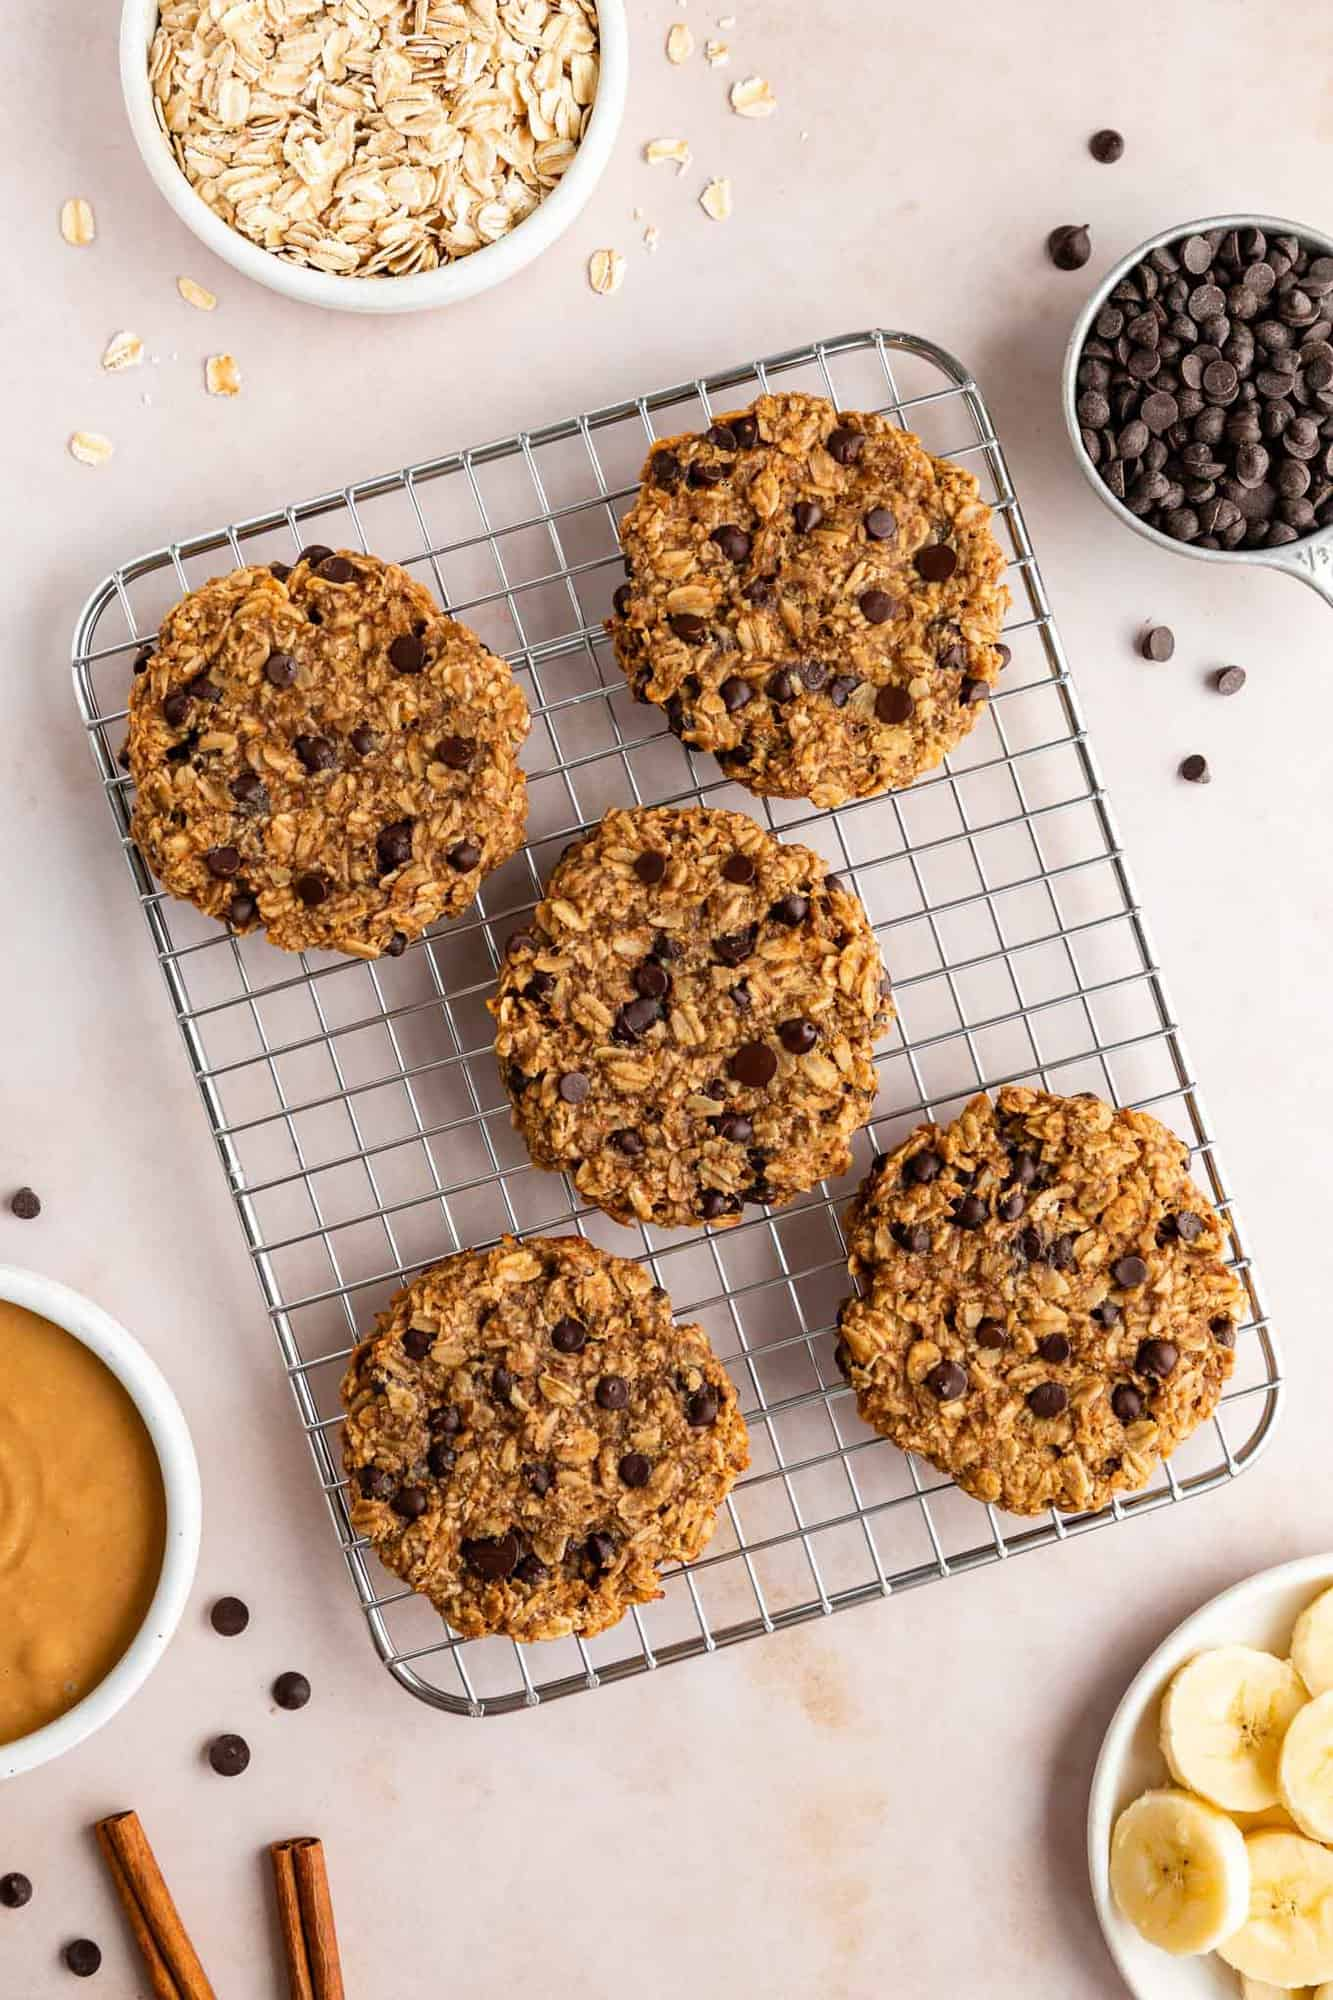 five peanut butter banana oatmeal cookies on a wire cooling rack surrounded by bowls of ingredients